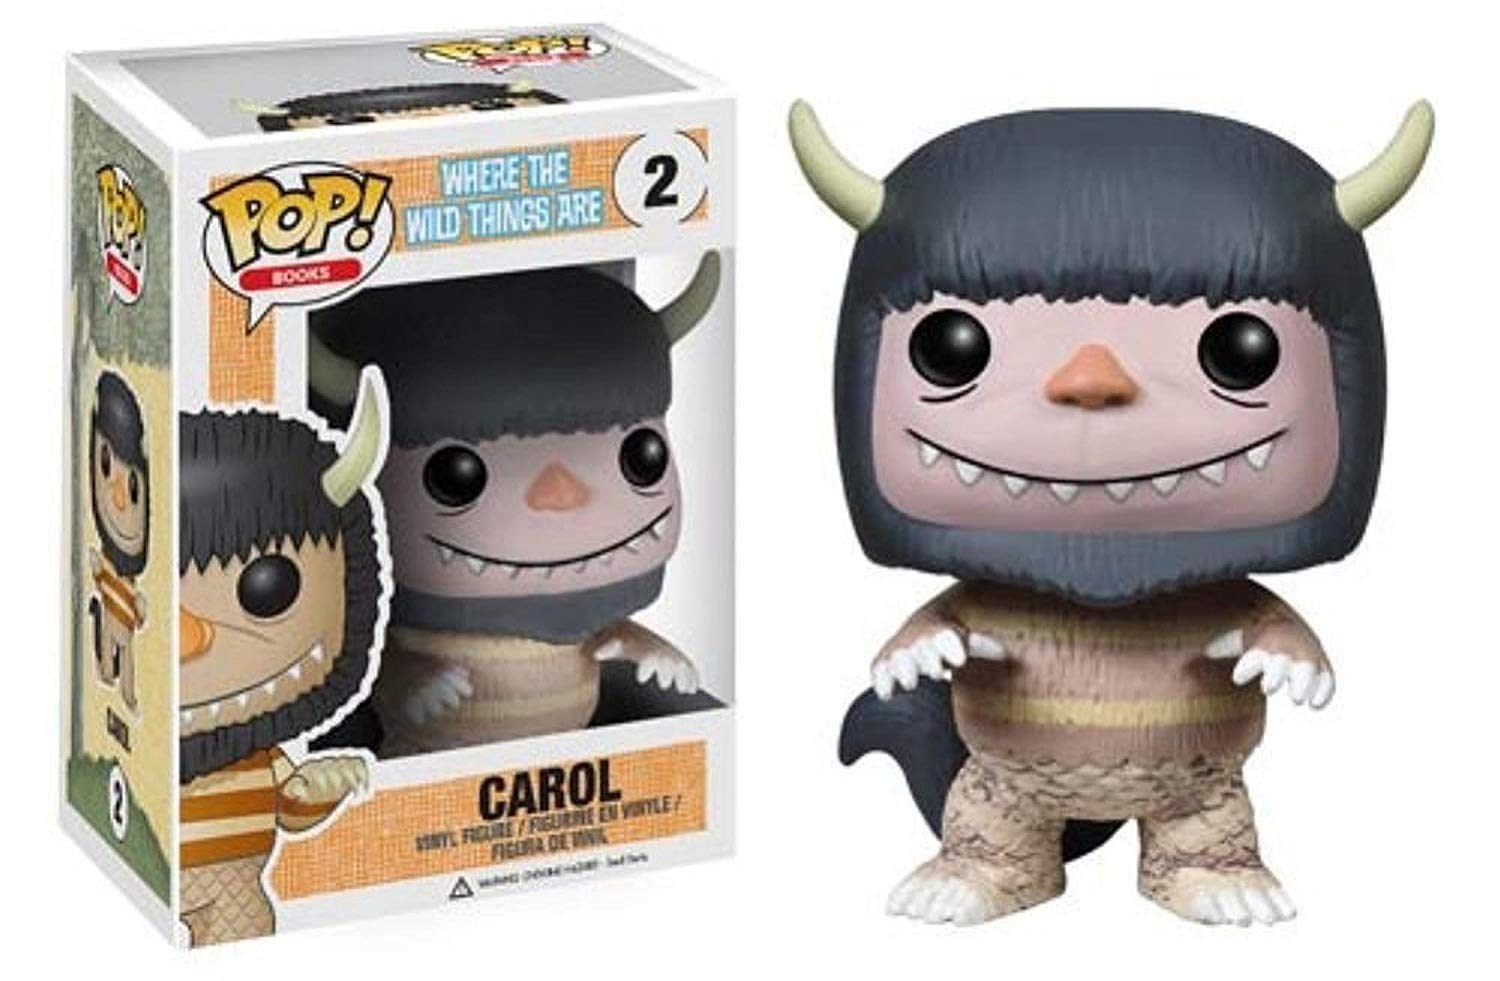 Funko pop Official Books: Where The Wild Things Are - Carol Vinyl Action Figure Collectible Model Toy with Original BoxFunko pop Official Books: Where The Wild Things Are - Carol Vinyl Action Figure Collectible Model Toy with Original Box